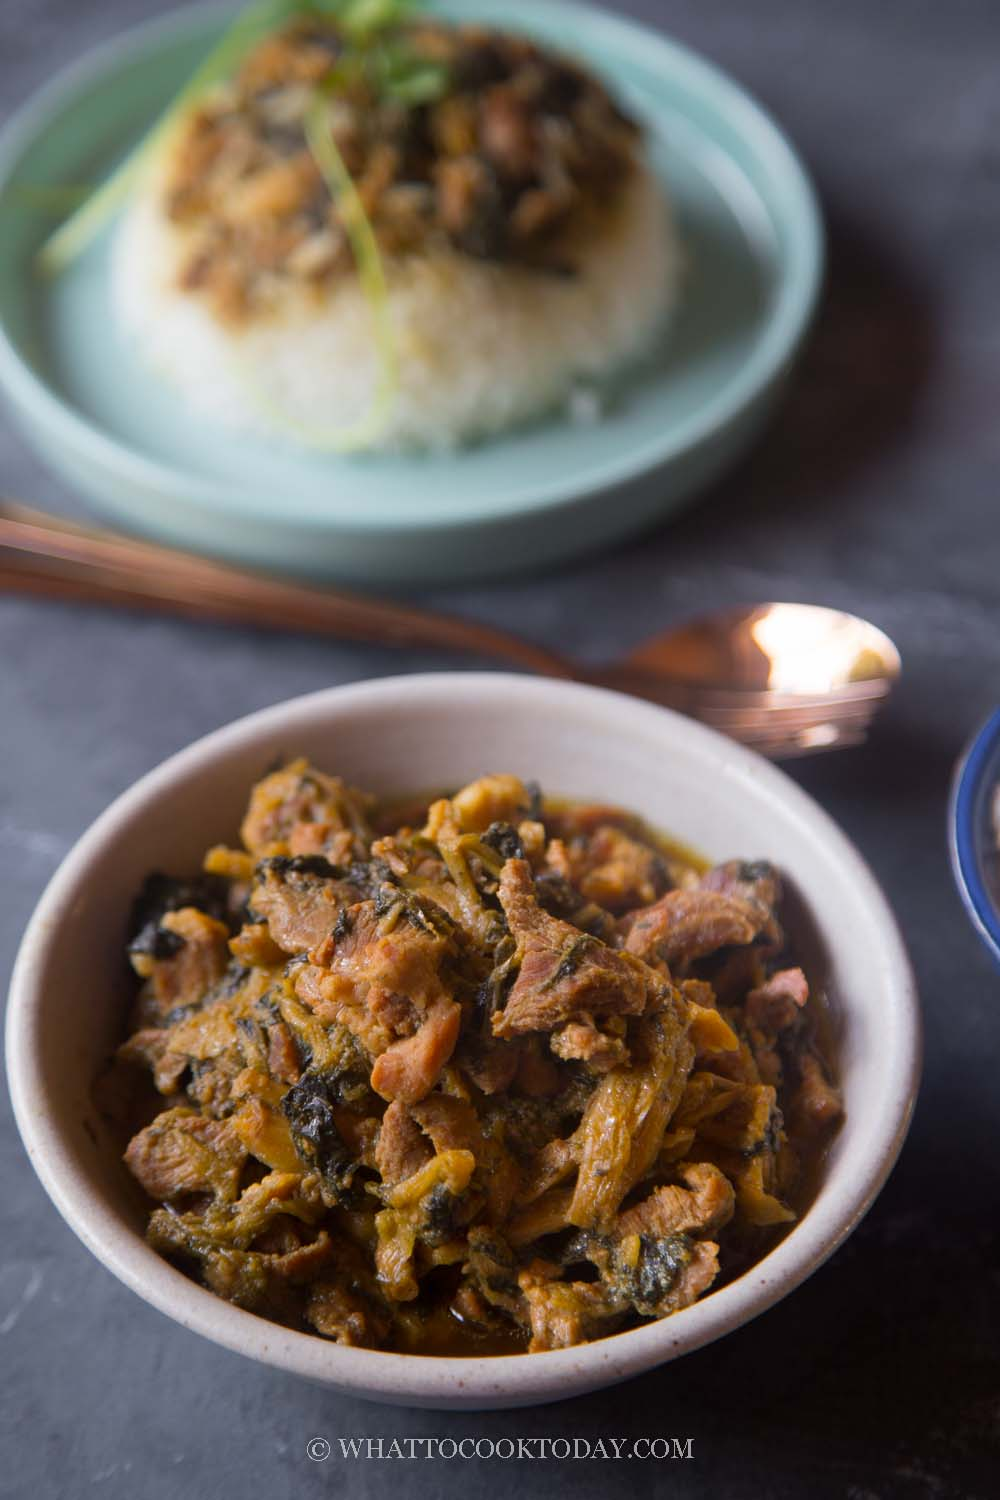 Easy Braised Mei Cai (Muy Choy) with Pork